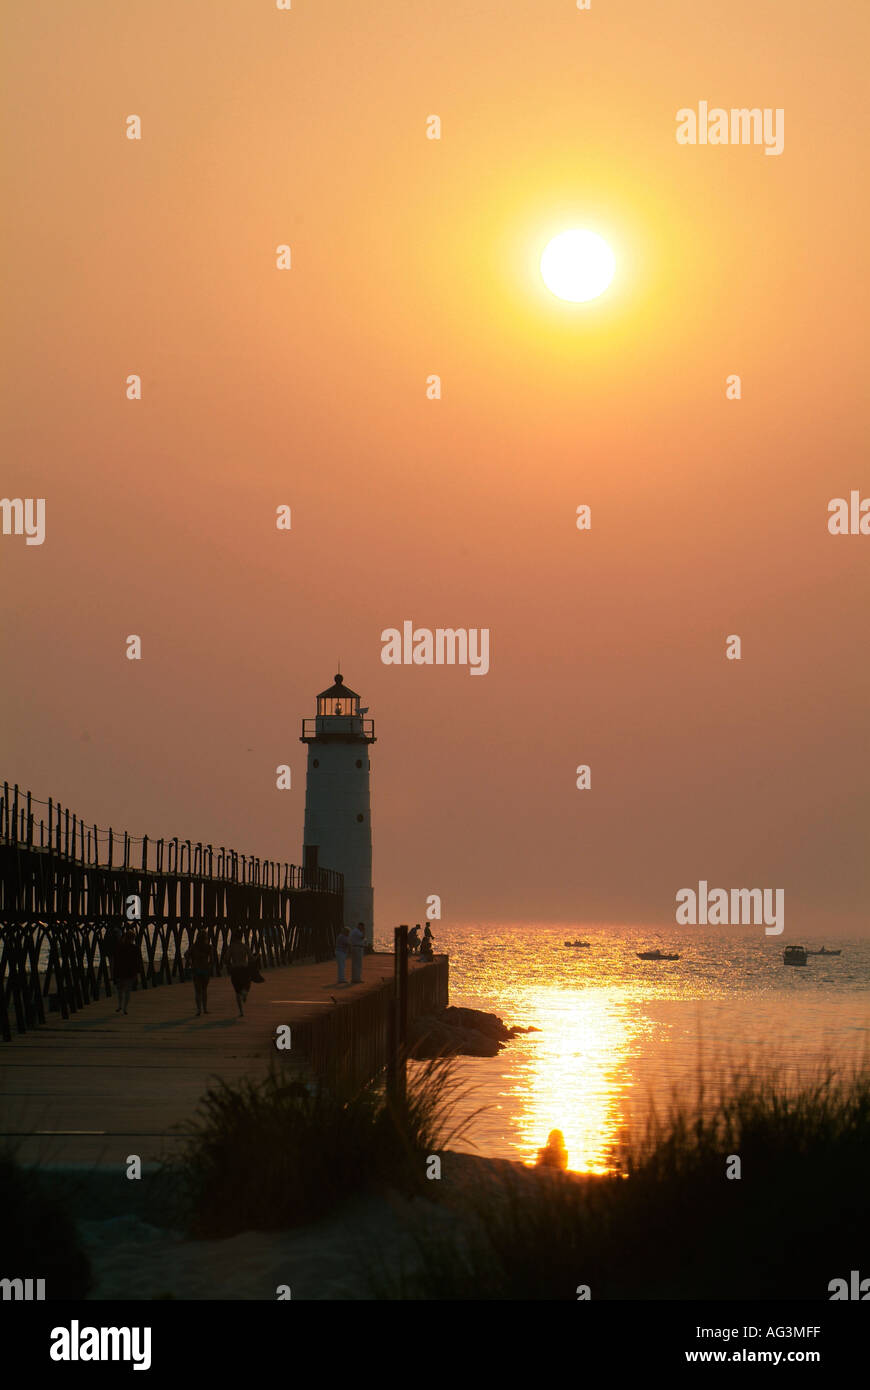 Sunset behind the lighthouse on Lake Michigan at Manistee Michigan beach bhz - Stock Image